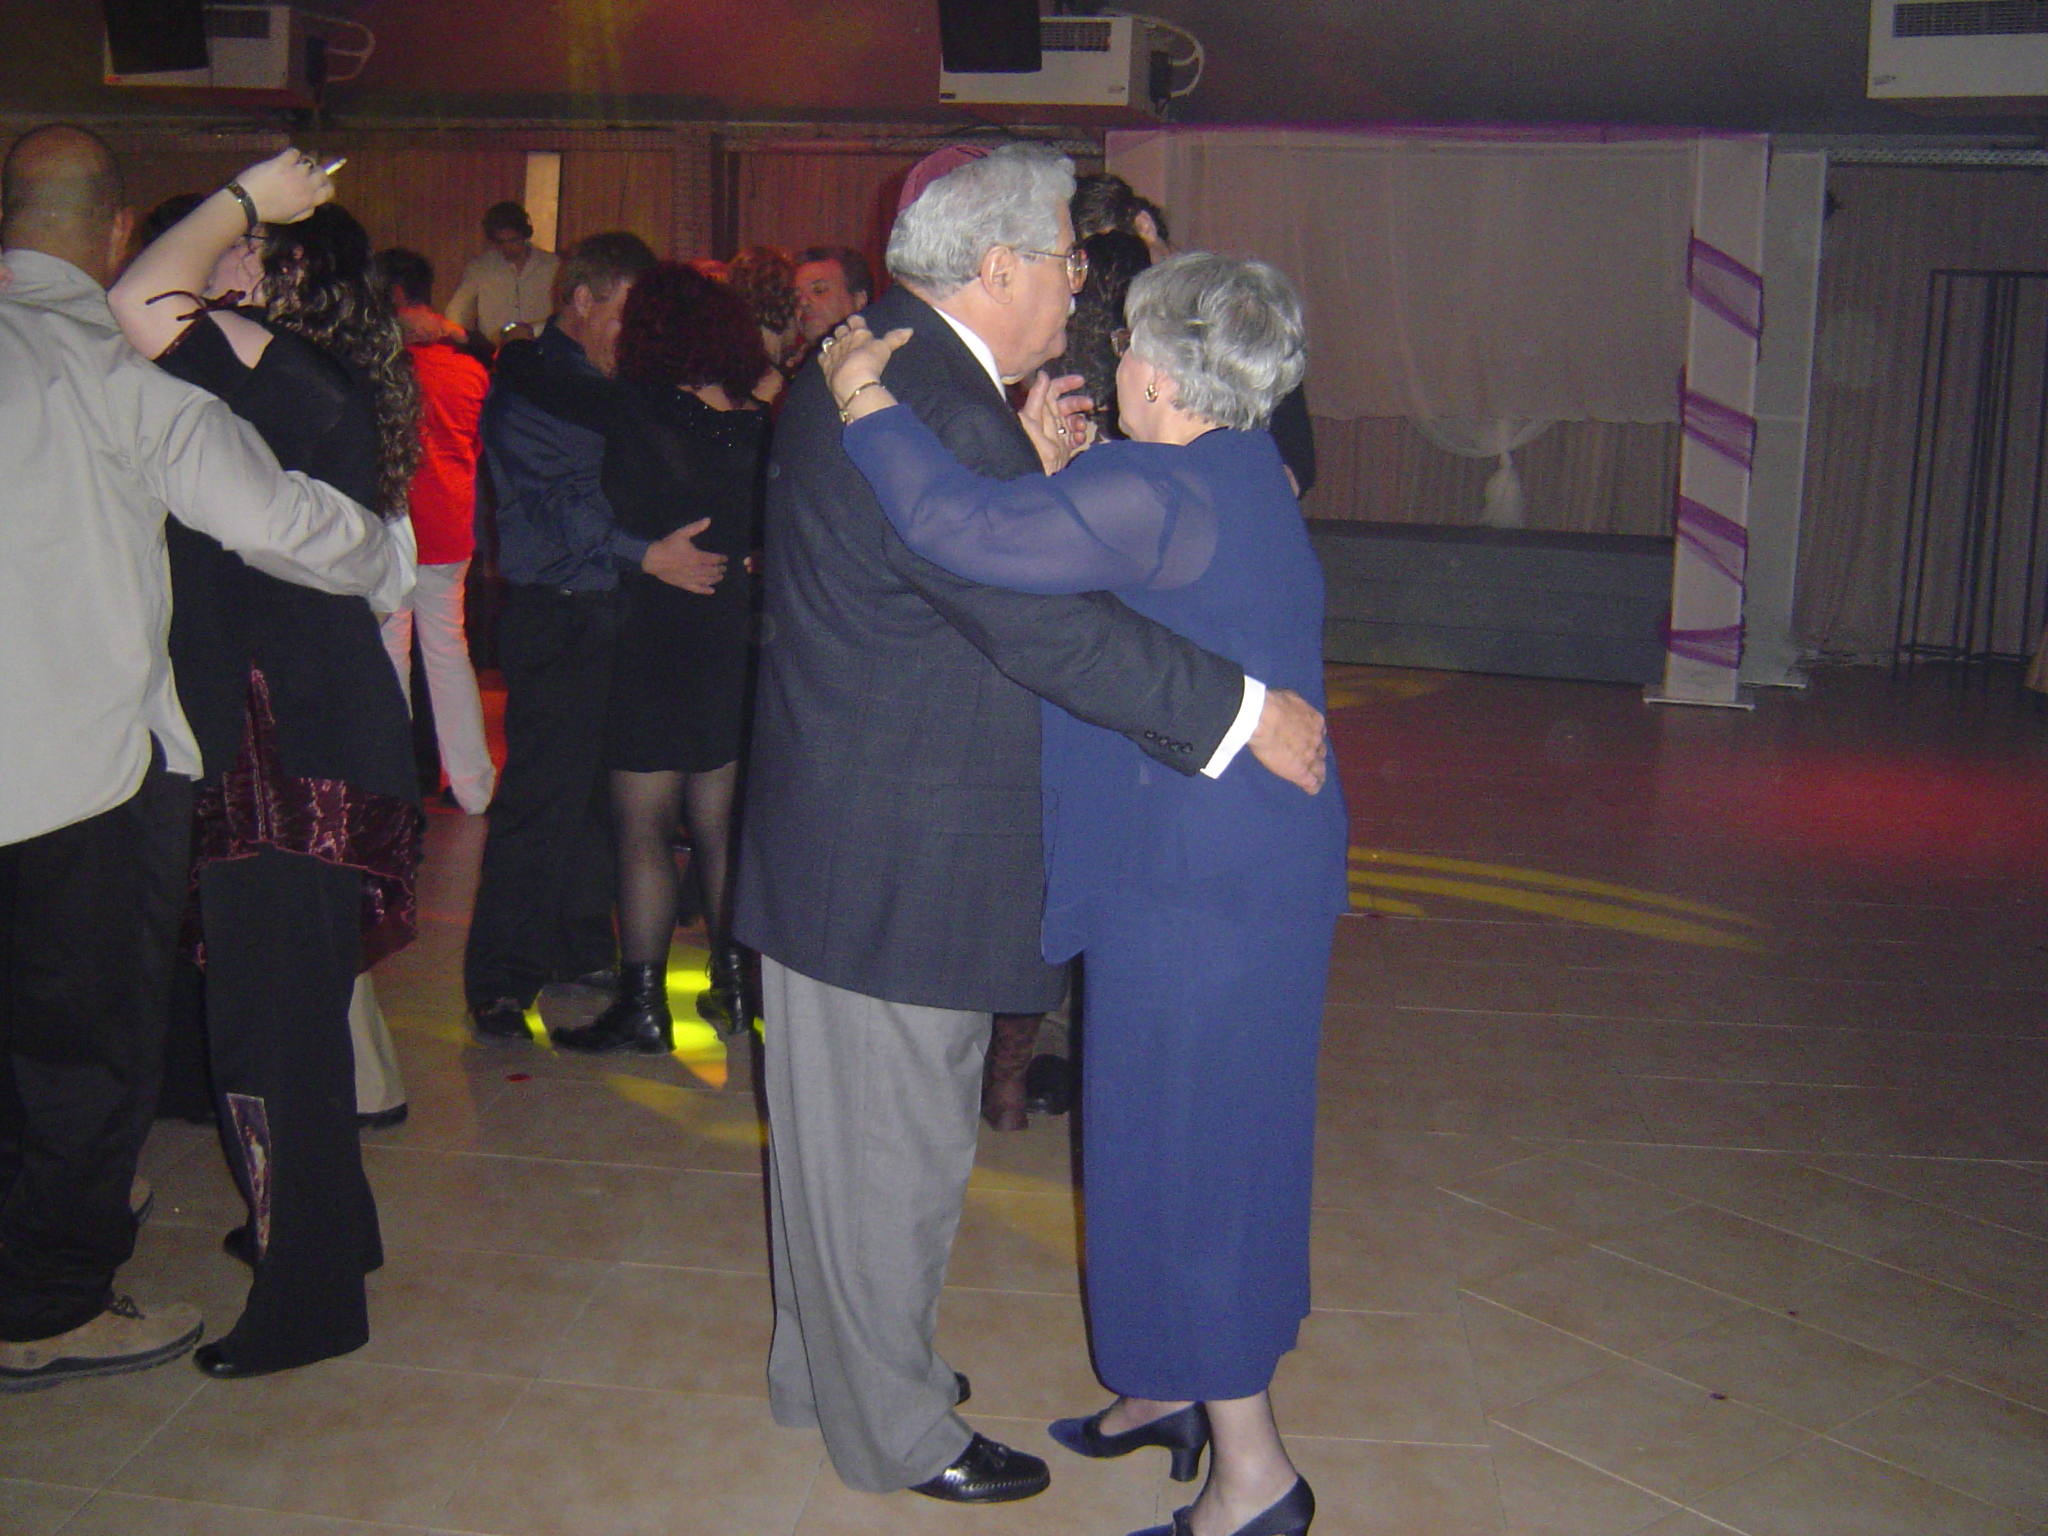 My Parents Dancing At A Cousins Wedding In Israel